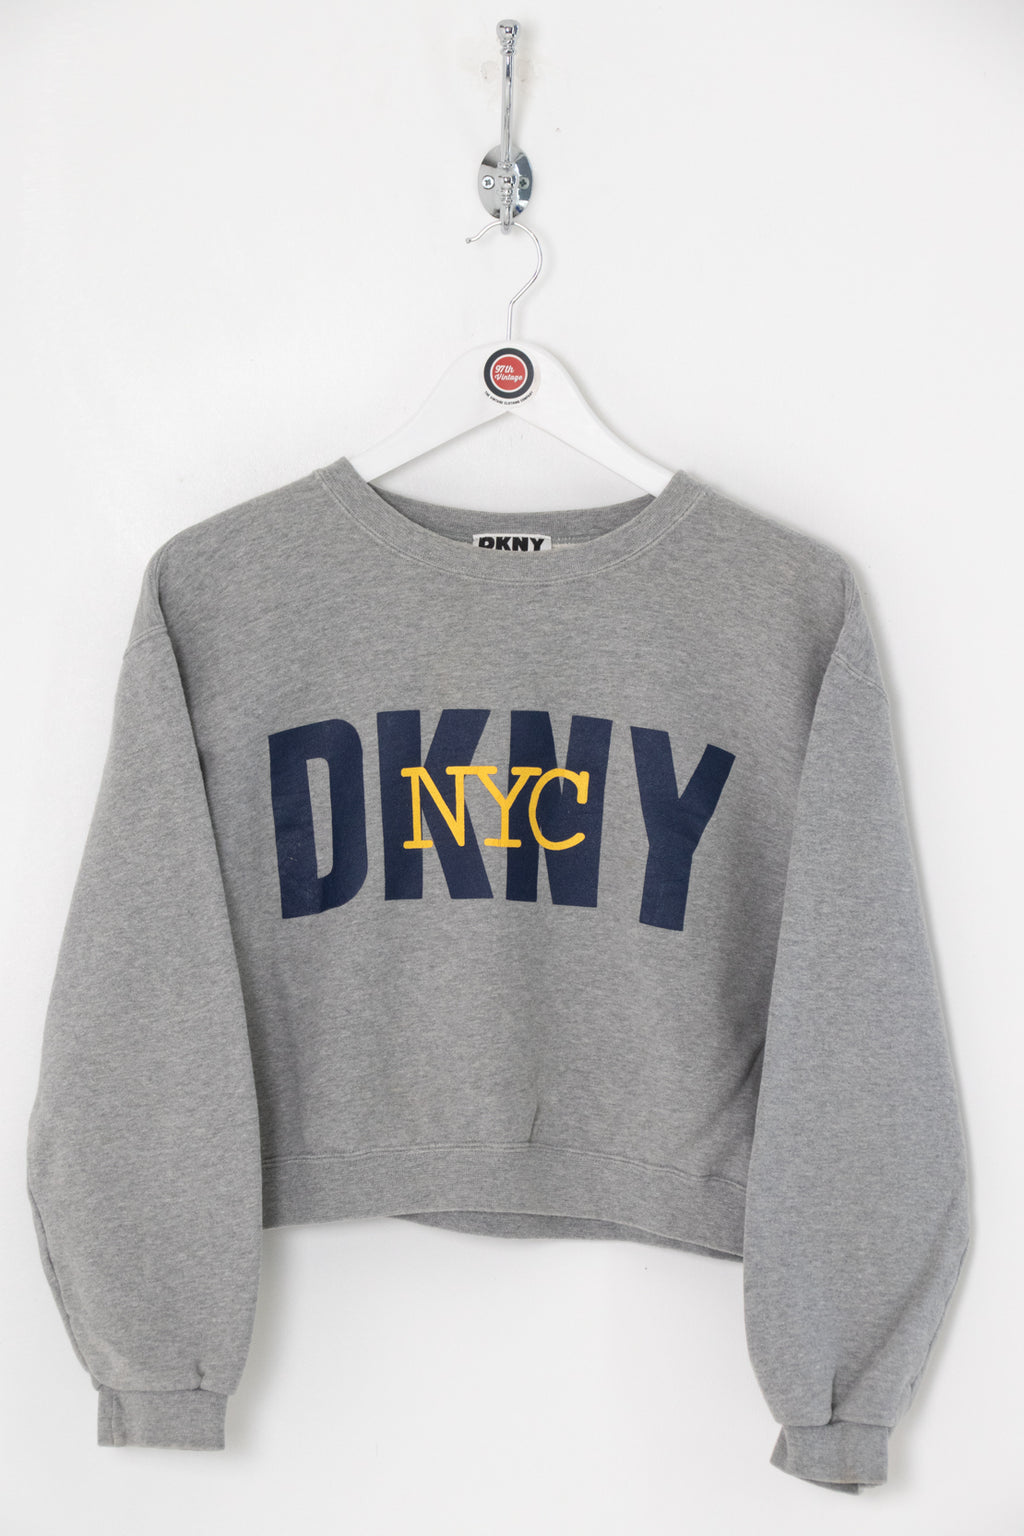 Women's DKNY Cropped Sweatshirt (S)